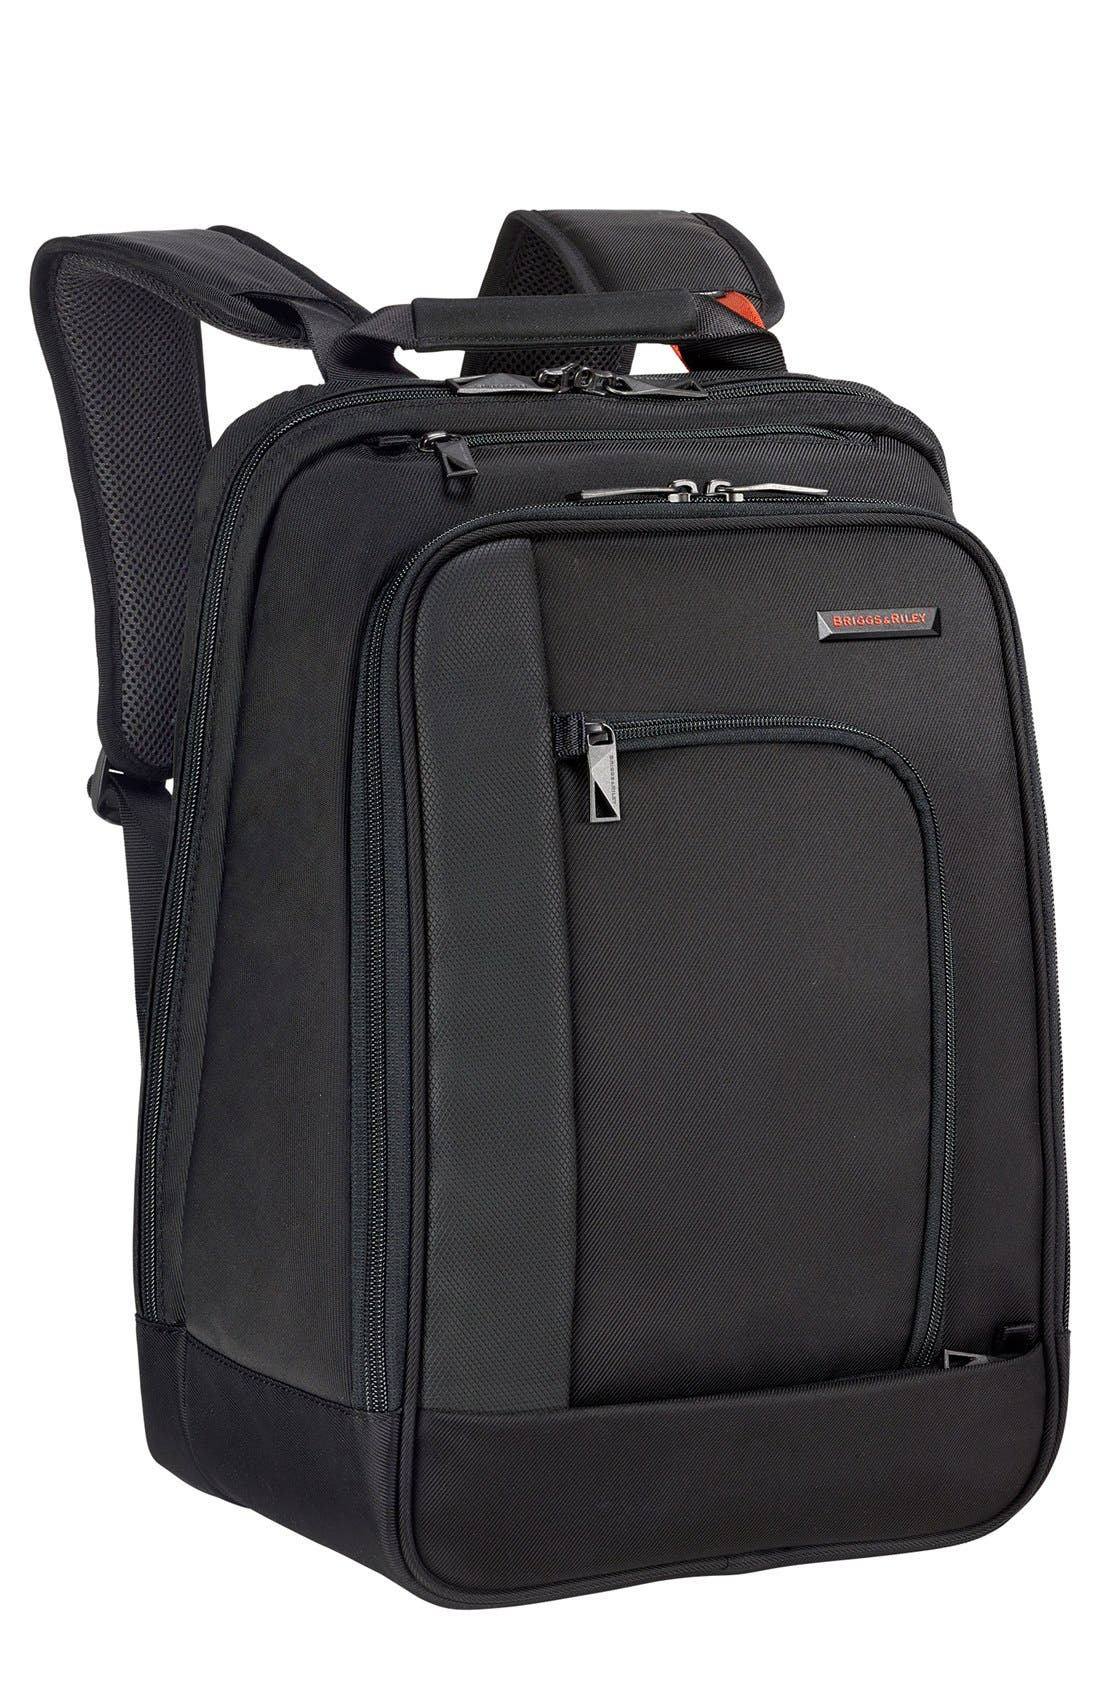 Verb - Activate Backpack,                         Main,                         color, BLACK